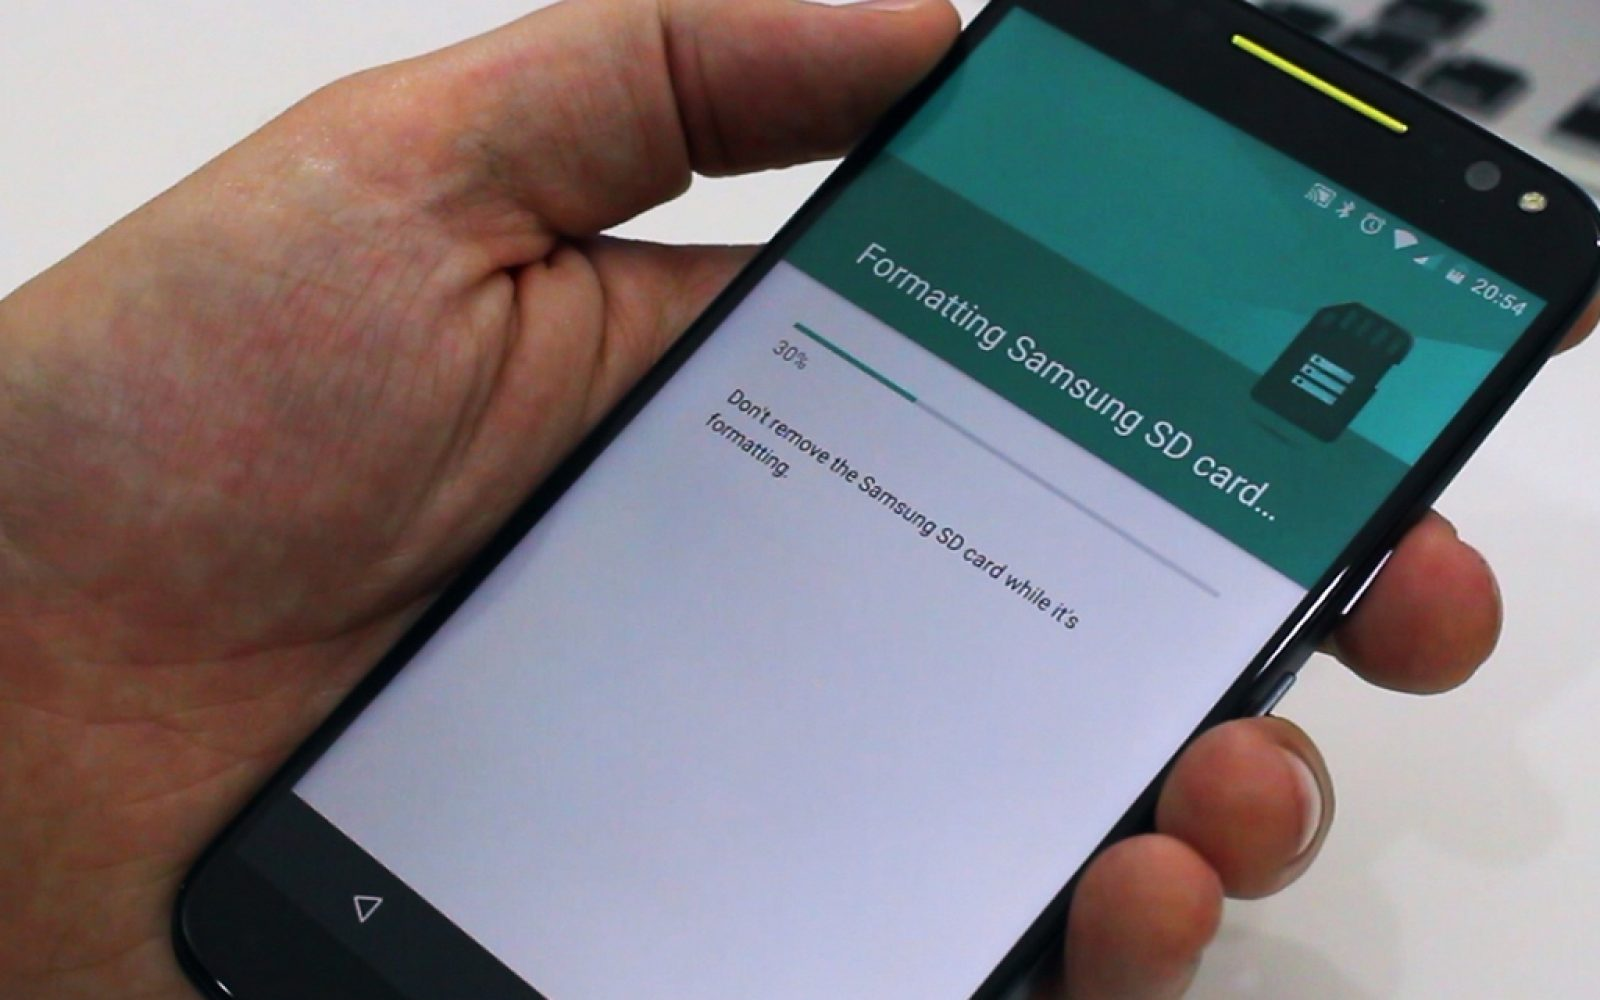 Android 6 0 Marshmallow tip: 'Adopt' your MicroSD card as internal